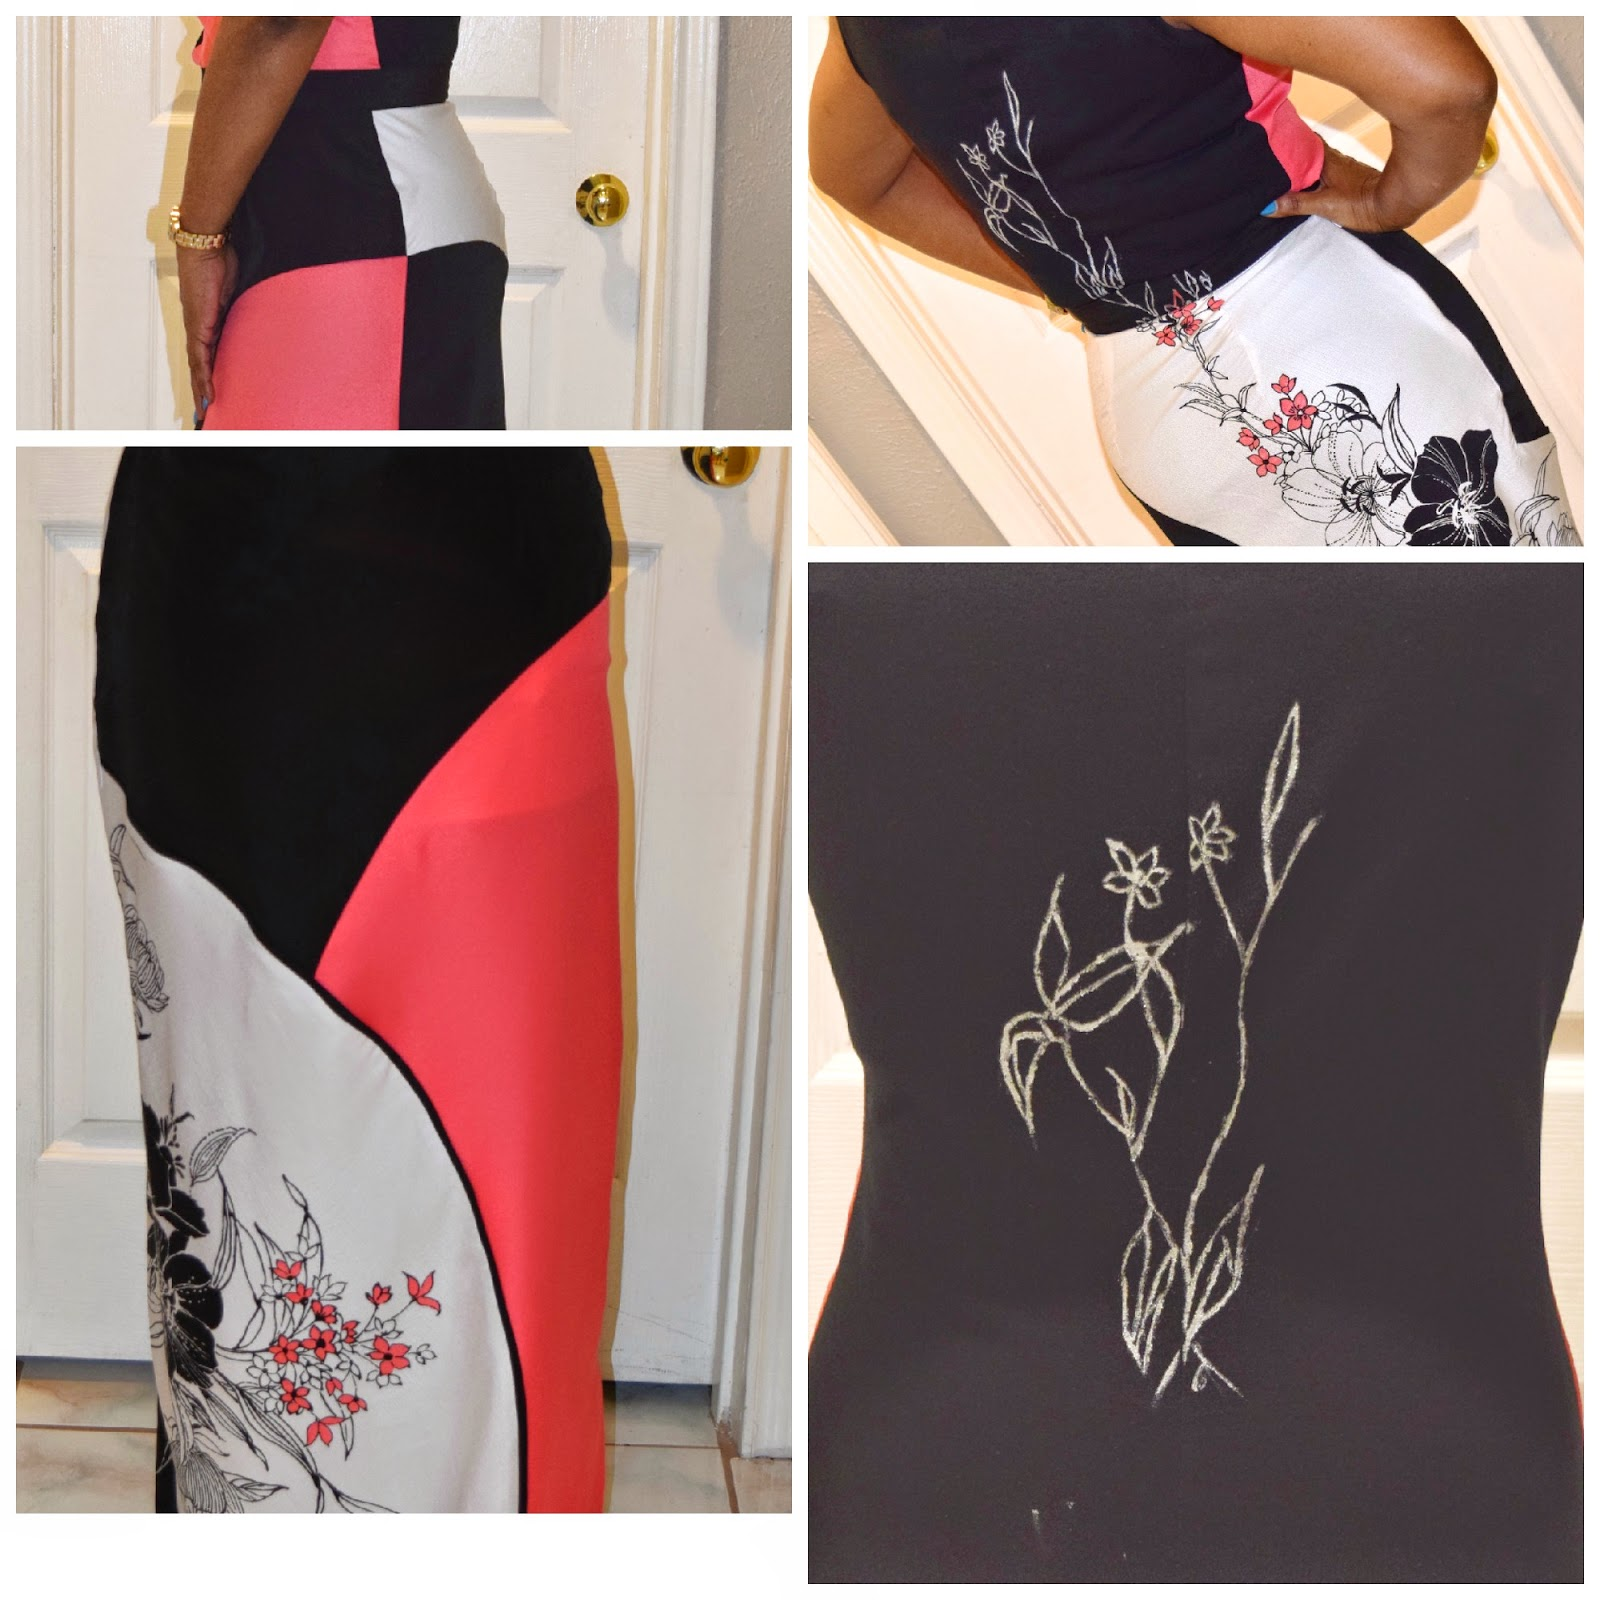 piping the skirt and painting the back of the vogue top.